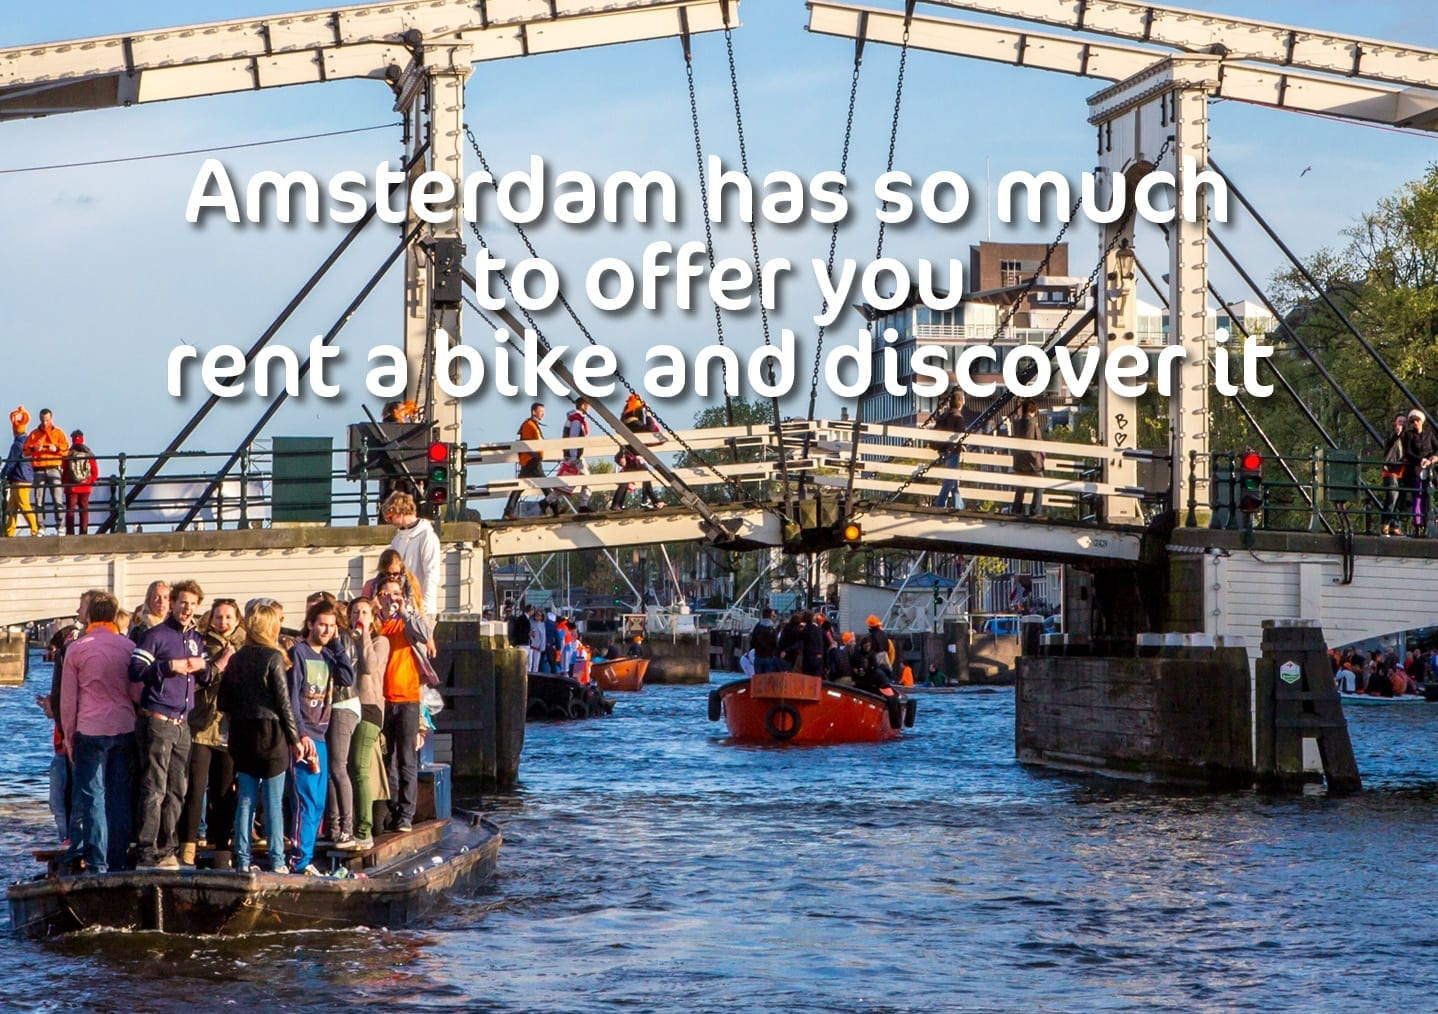 Amsterdam has so much to offer you rent a bike and discover it